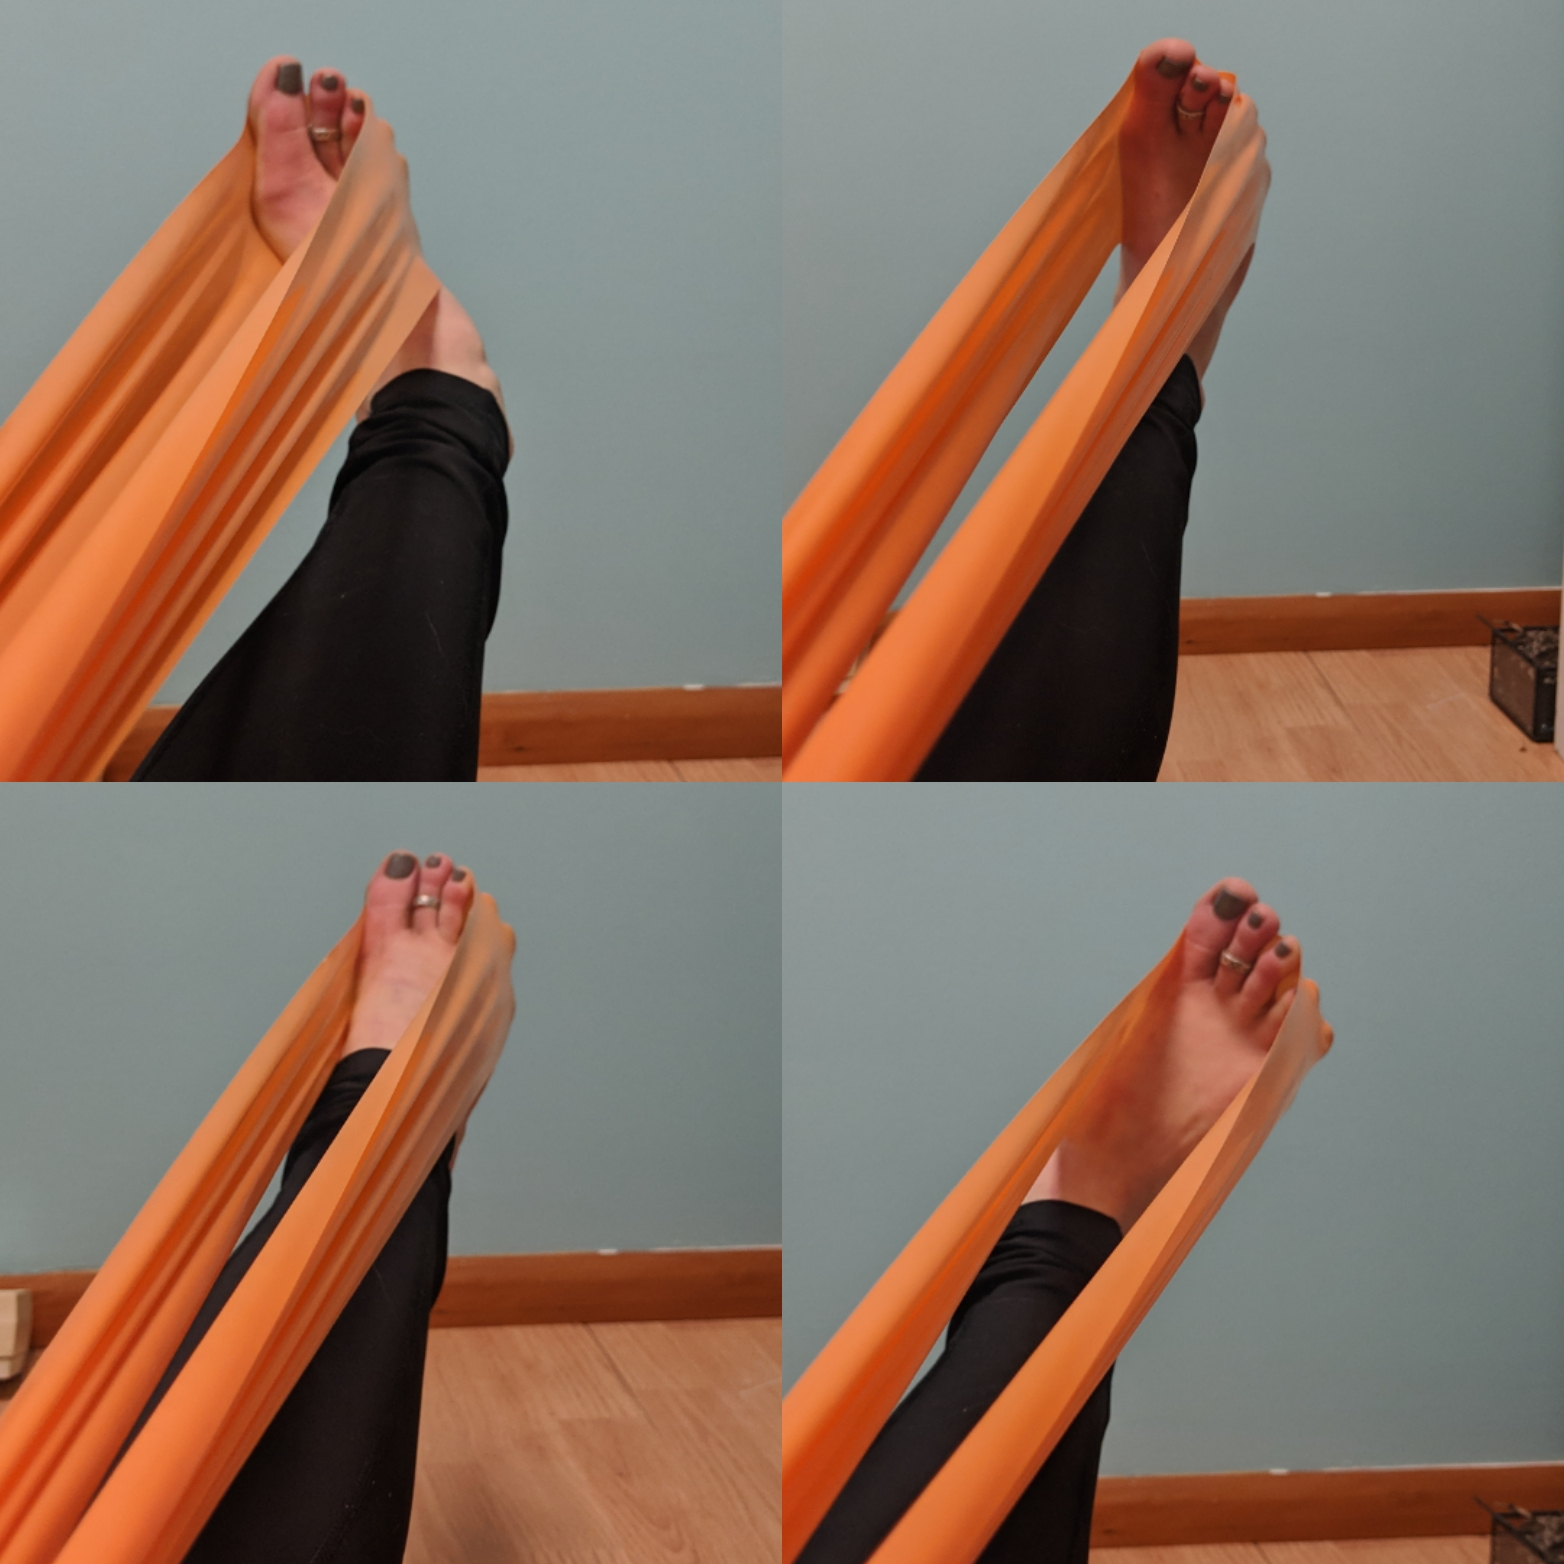 ankle rotation exercise